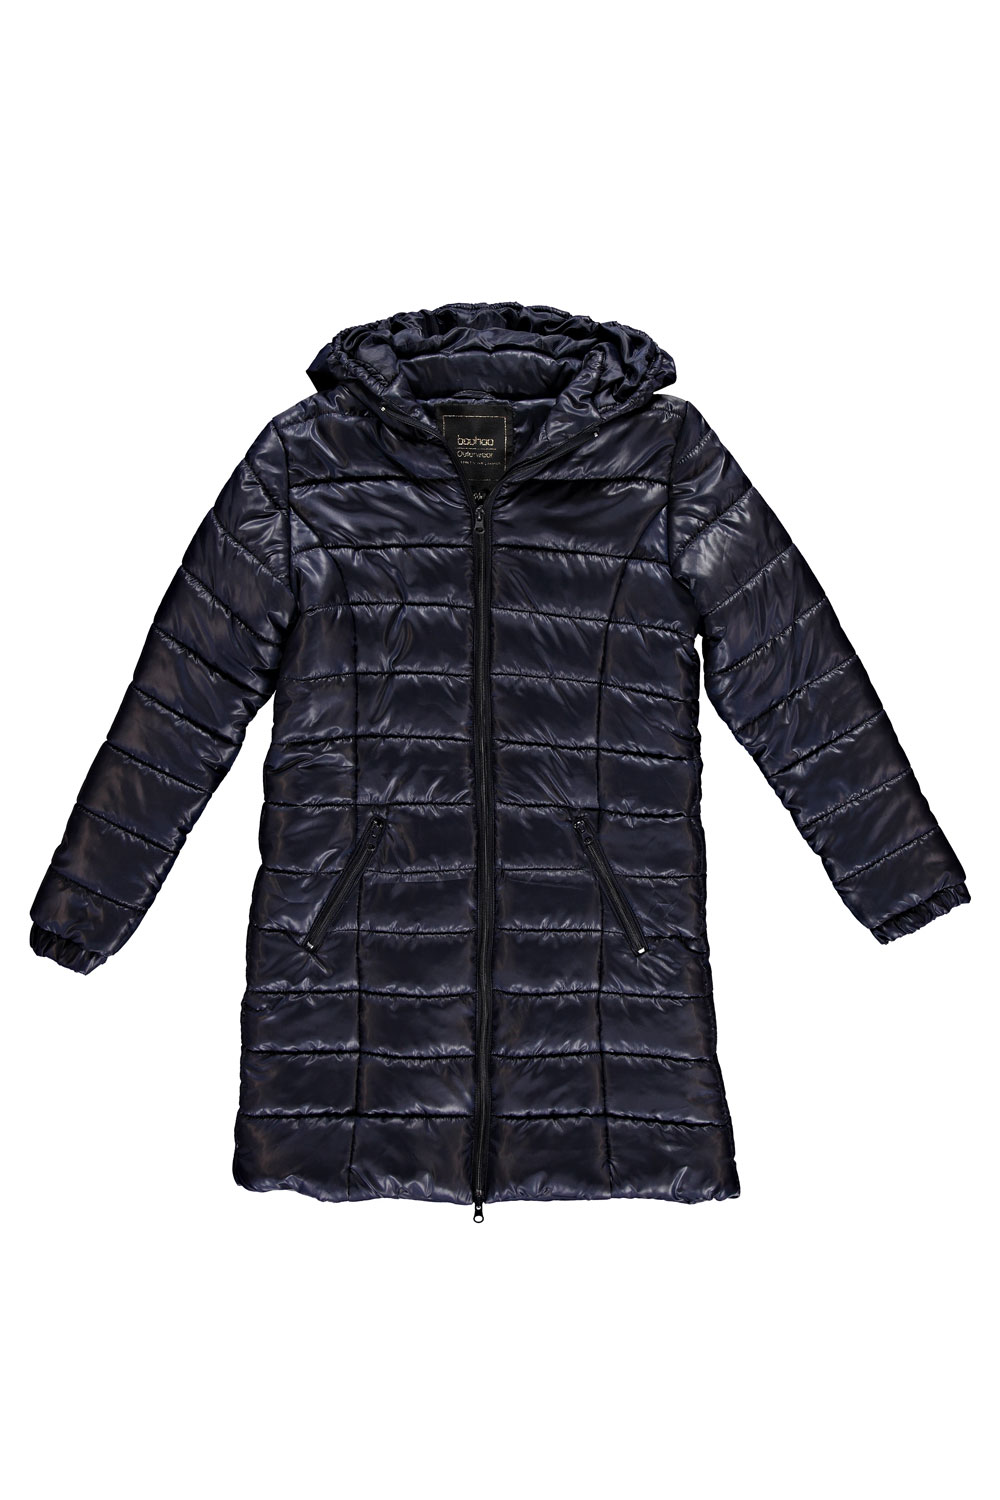 Boohoo Womens Karlie Wet Look Longline Puffer Coat Quilted Jacket ...